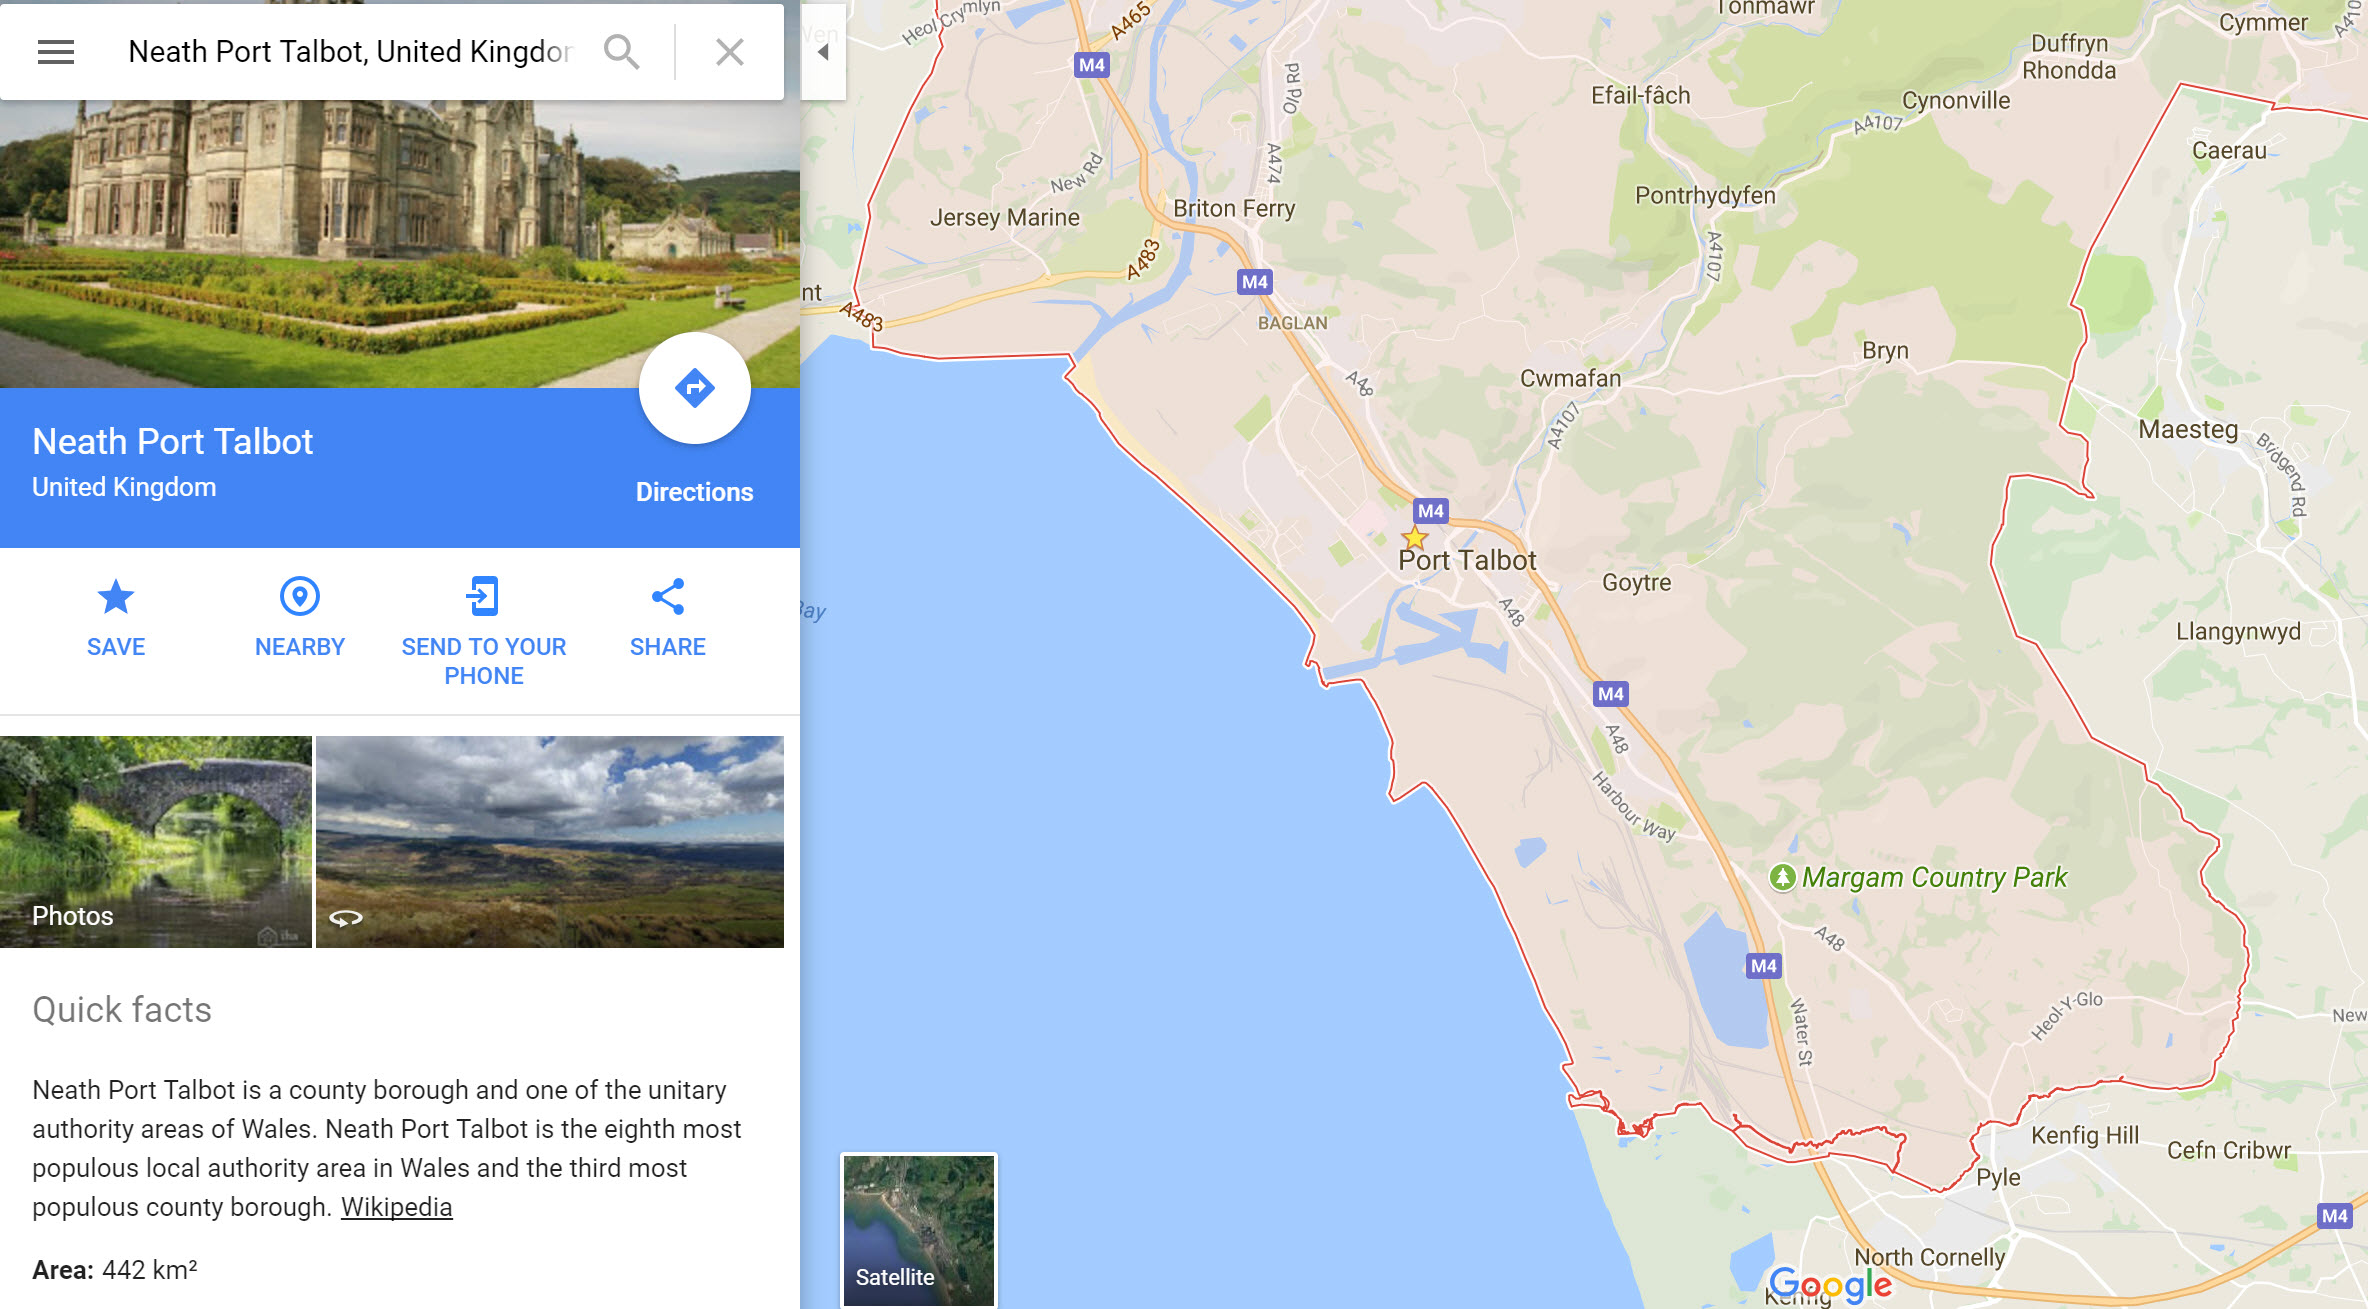 Port Talbot Google map screen shot